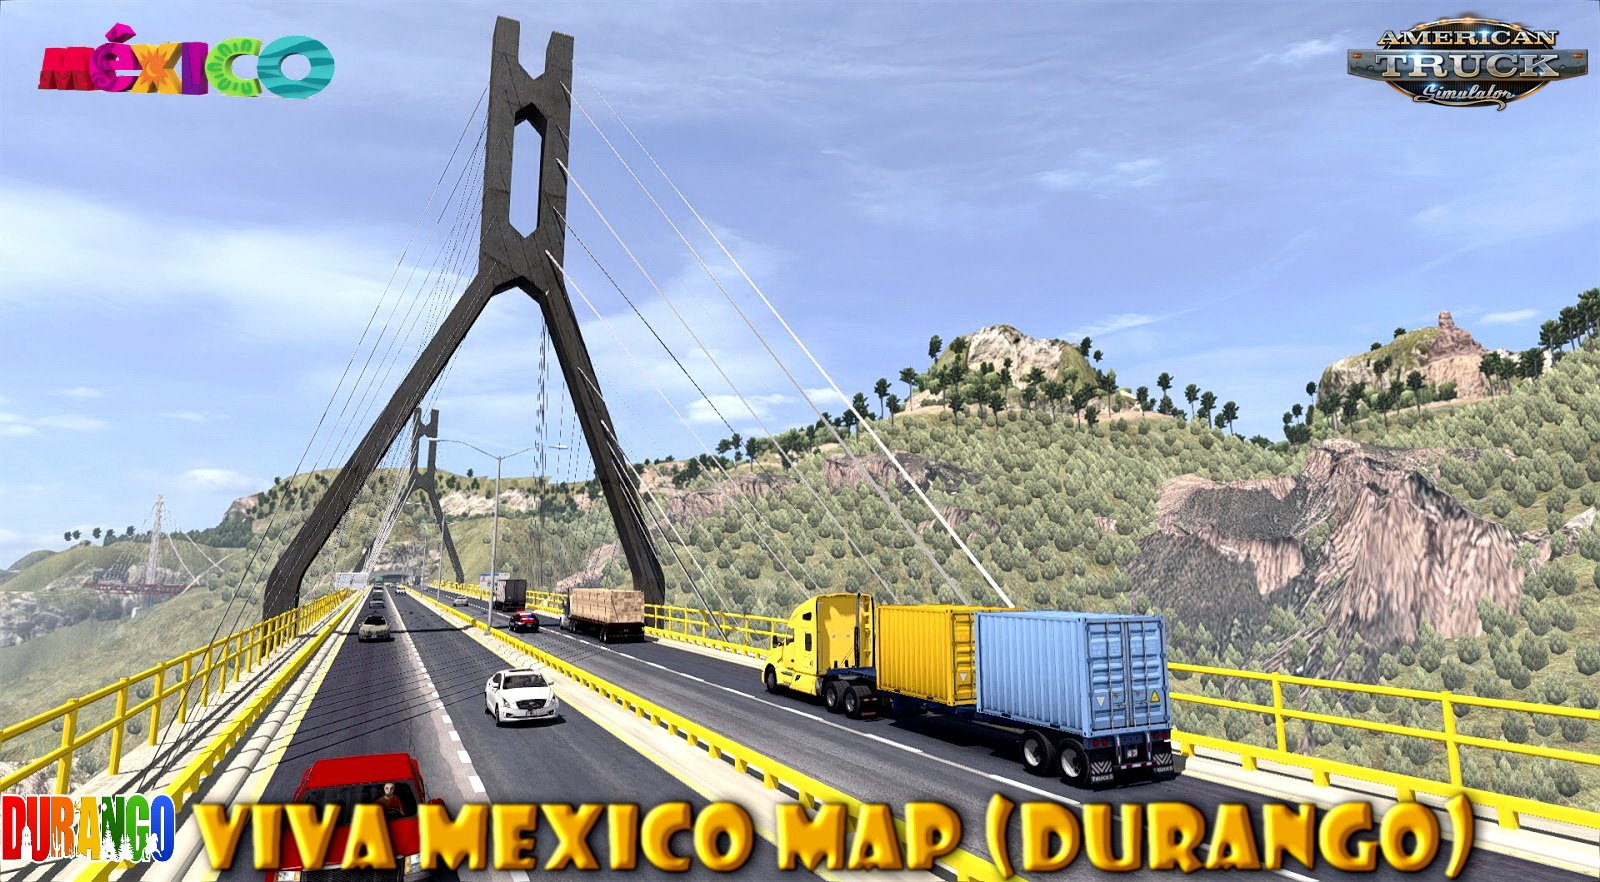 Viva Mexico Map (Durango) v2.4.3 (1.30.x)